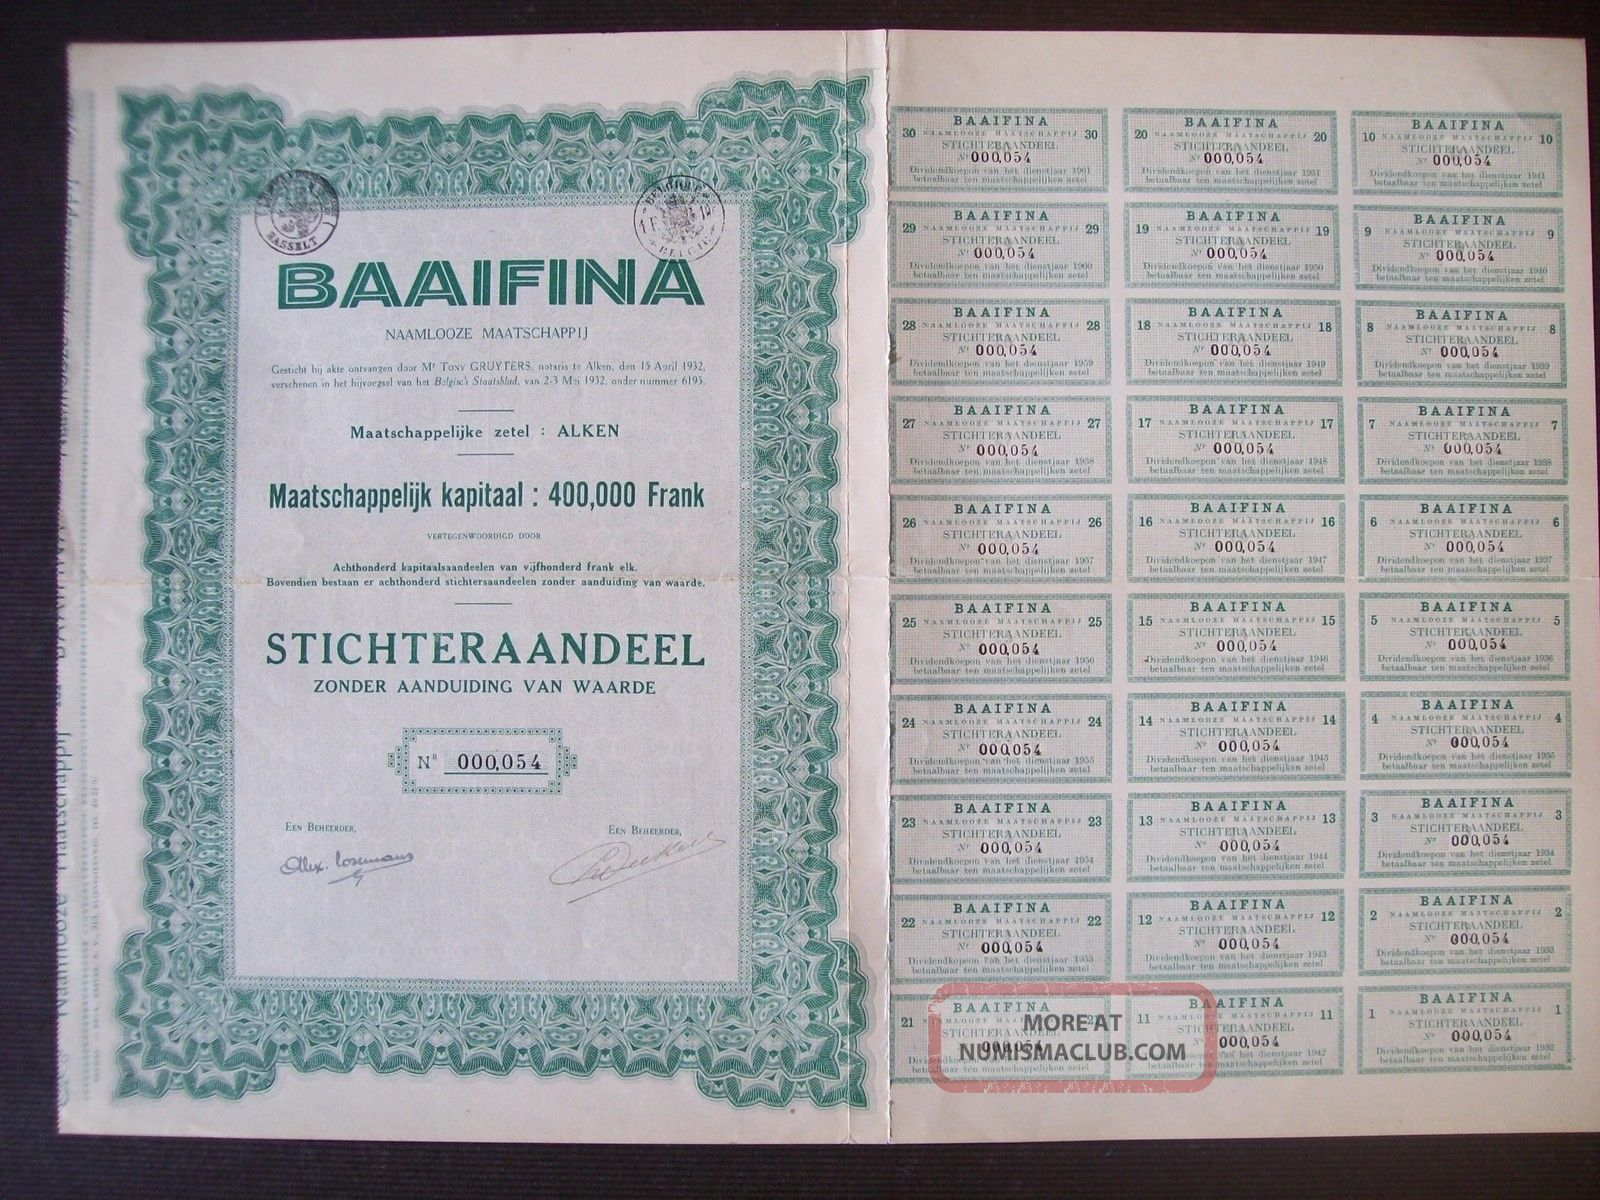 Belgium 1932 Bond With Coupons Baaifina Co.  Alken - Tabac Tobacco. .  R4036 World photo